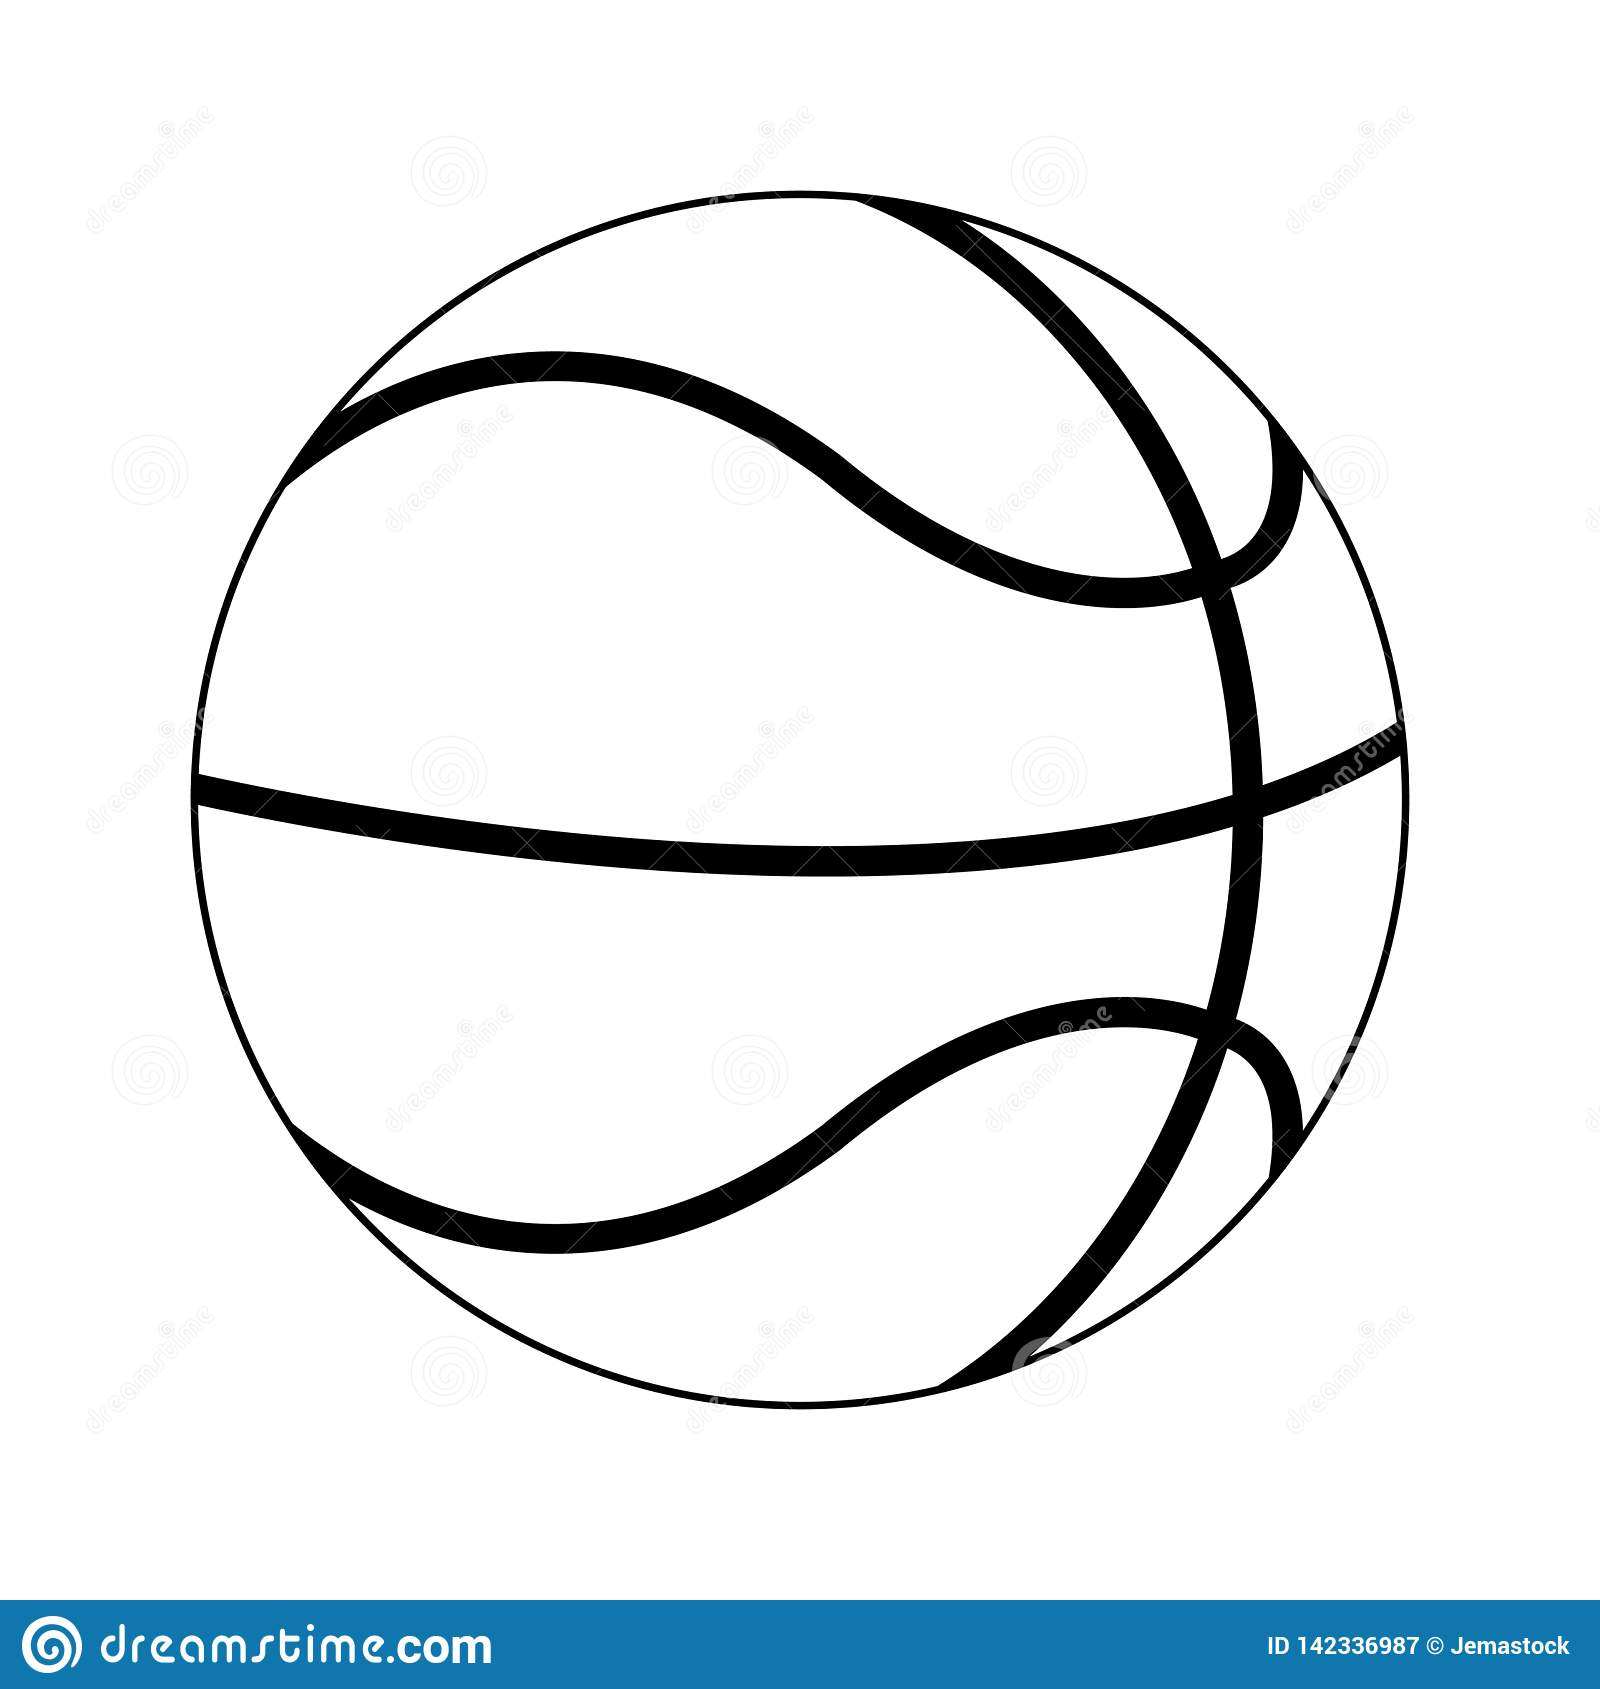 Basketball Ball Sport Cartoon In Black And White Stock Vector Illustration Of Sportive Style 142336987